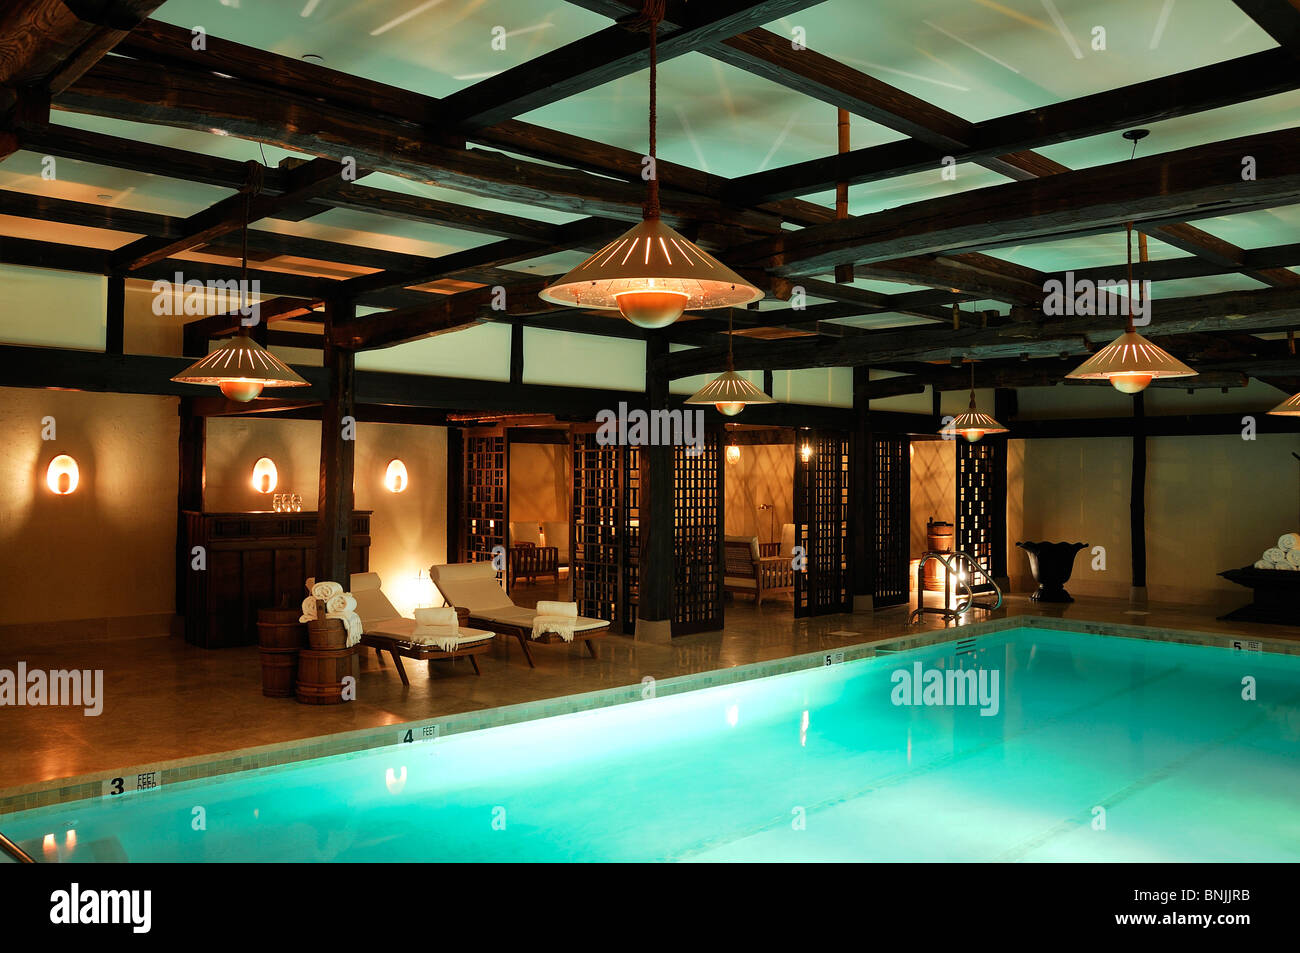 Indoor pool the greenwich hotel tribeca manhattan new york - Usa swimming build a pool handbook ...